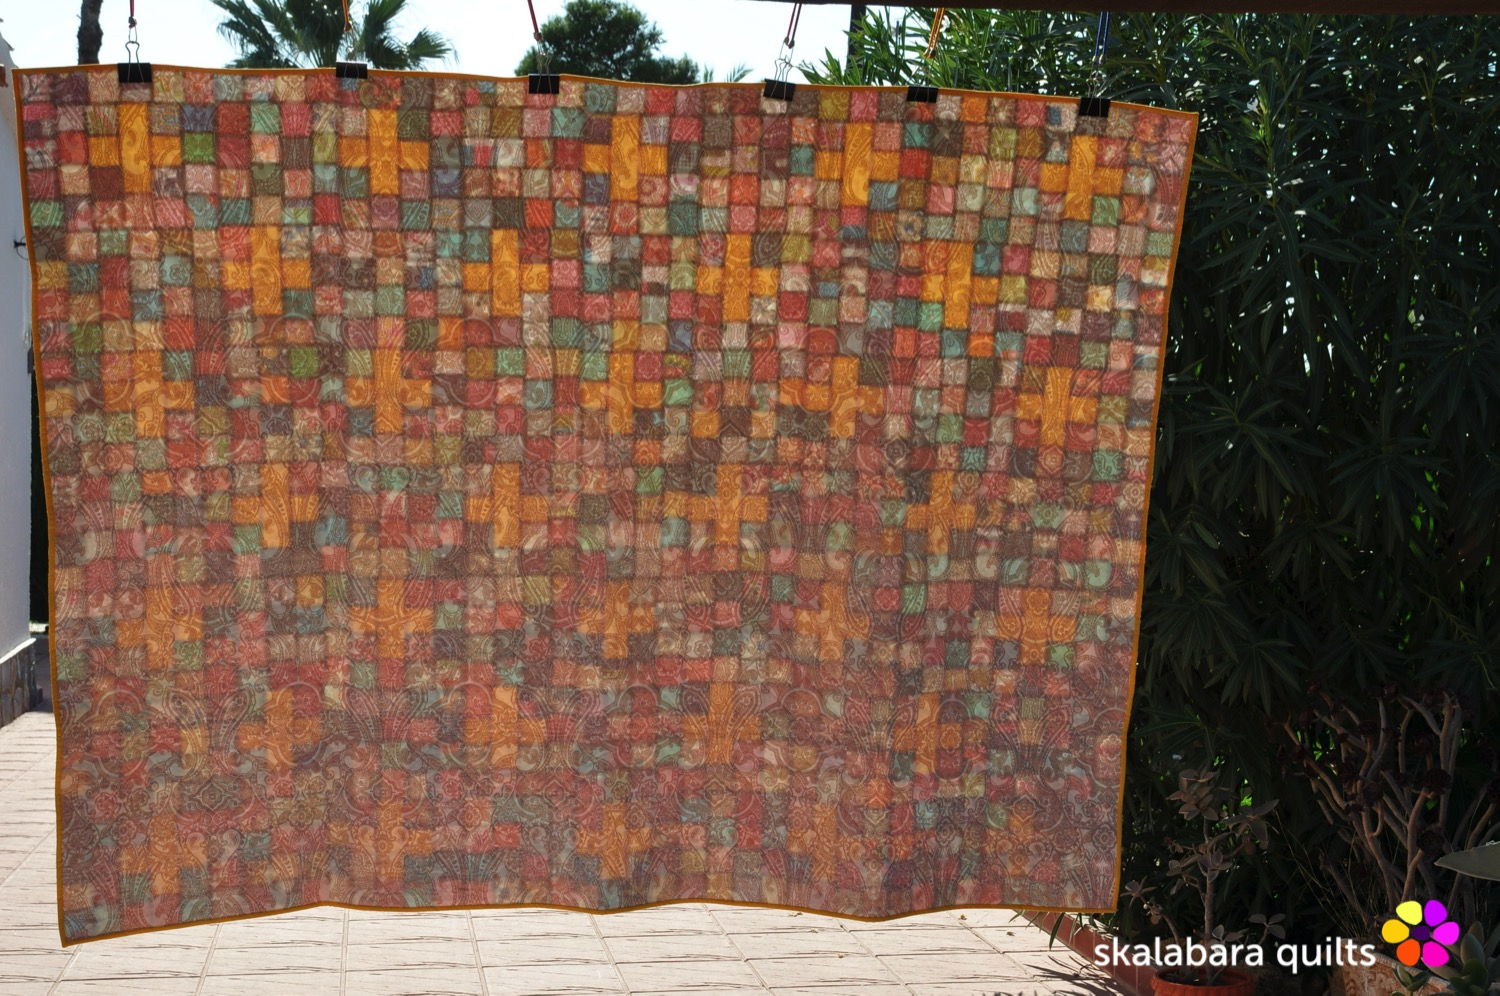 scrappy checkered quilt with crosses back - skalabara quilts